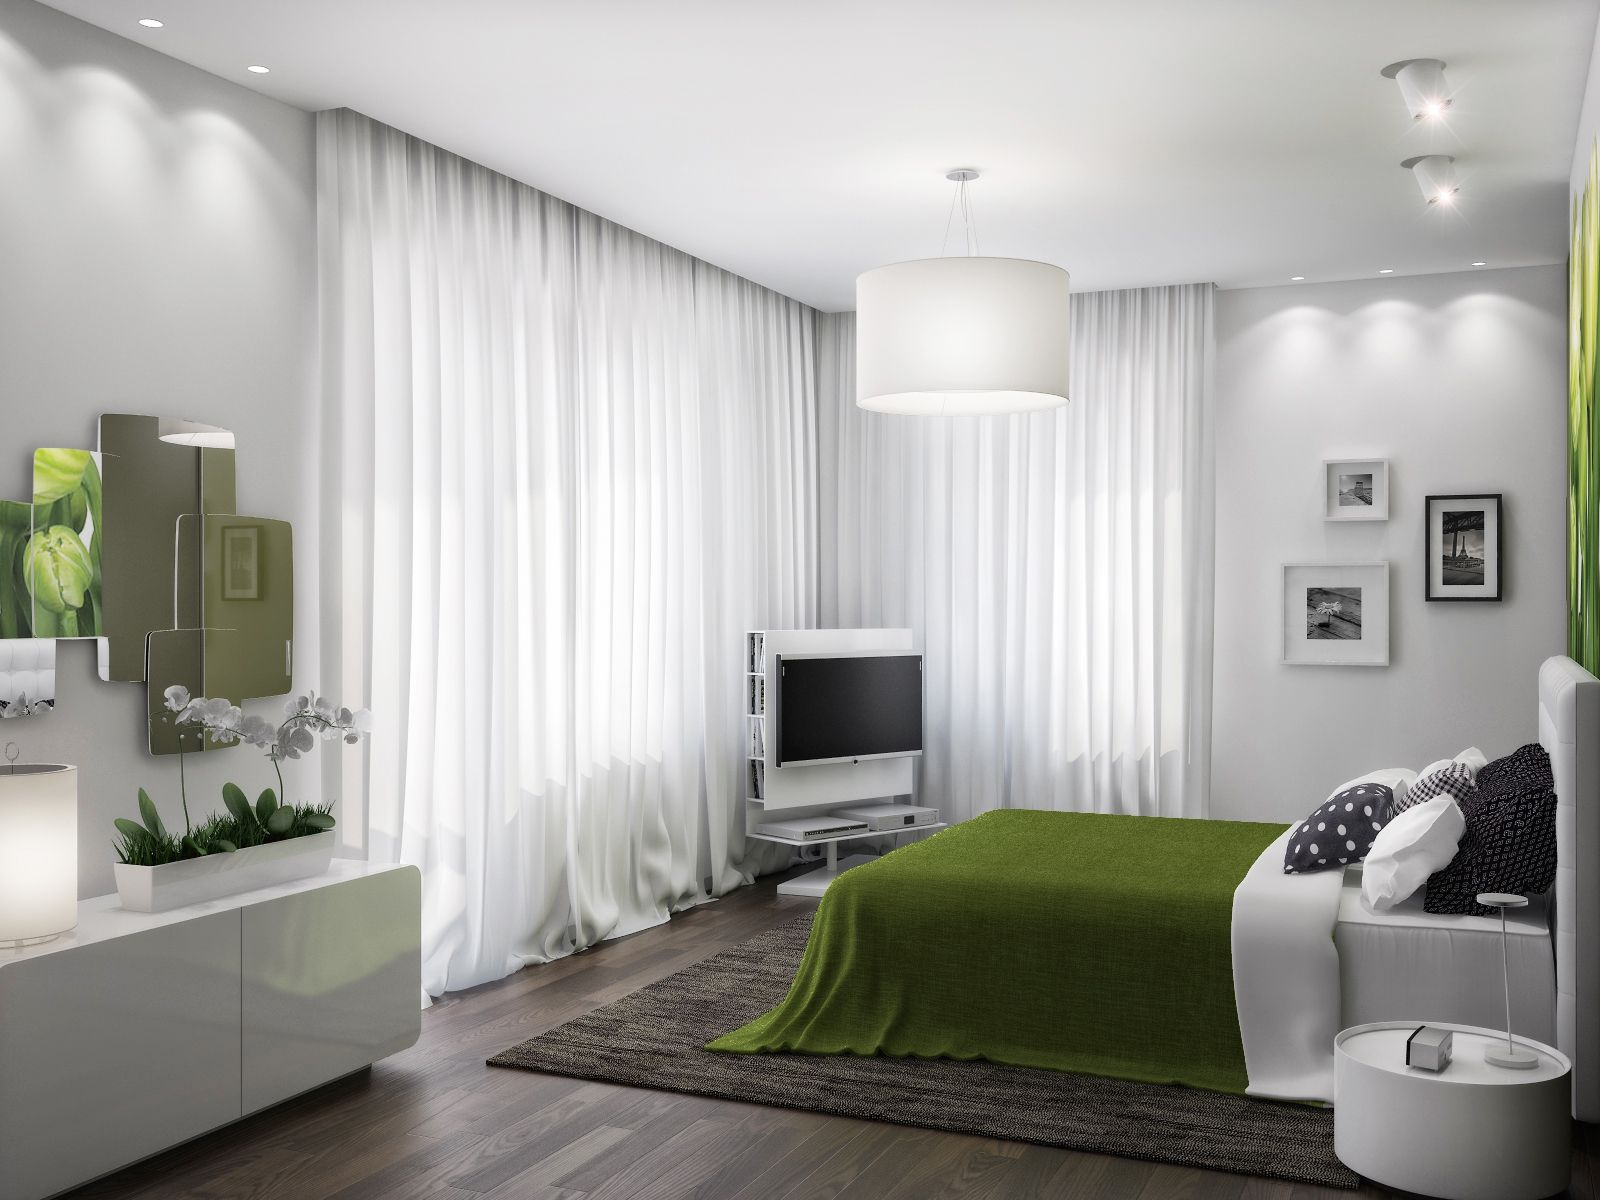 White and green bedroom - White And Green Bedroom Green White Bedroom Scheme